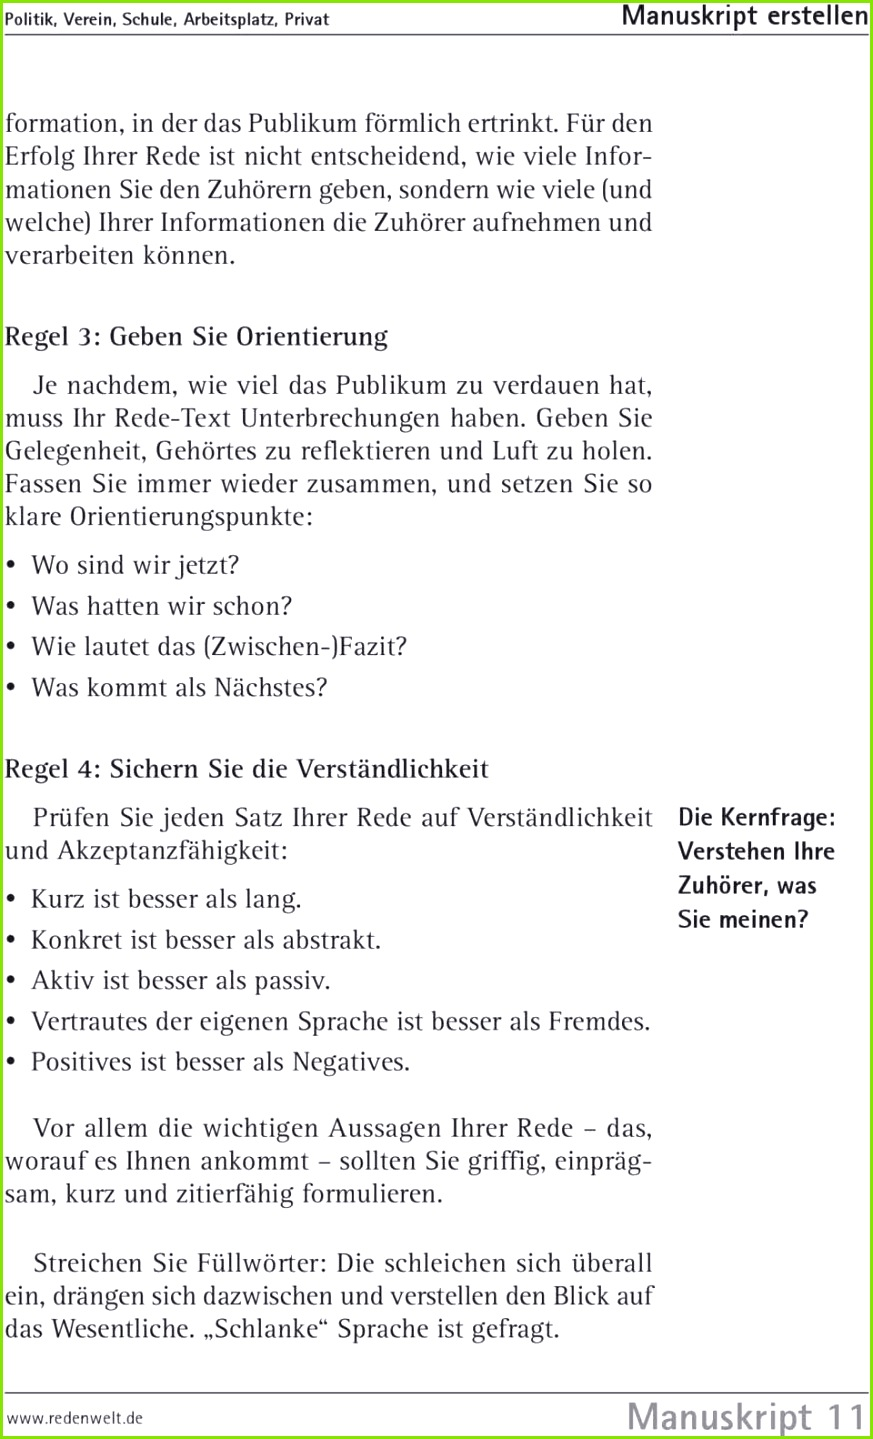 Charmant Lobrede Vorlage Für Mutter Ideen Entry Level Resume